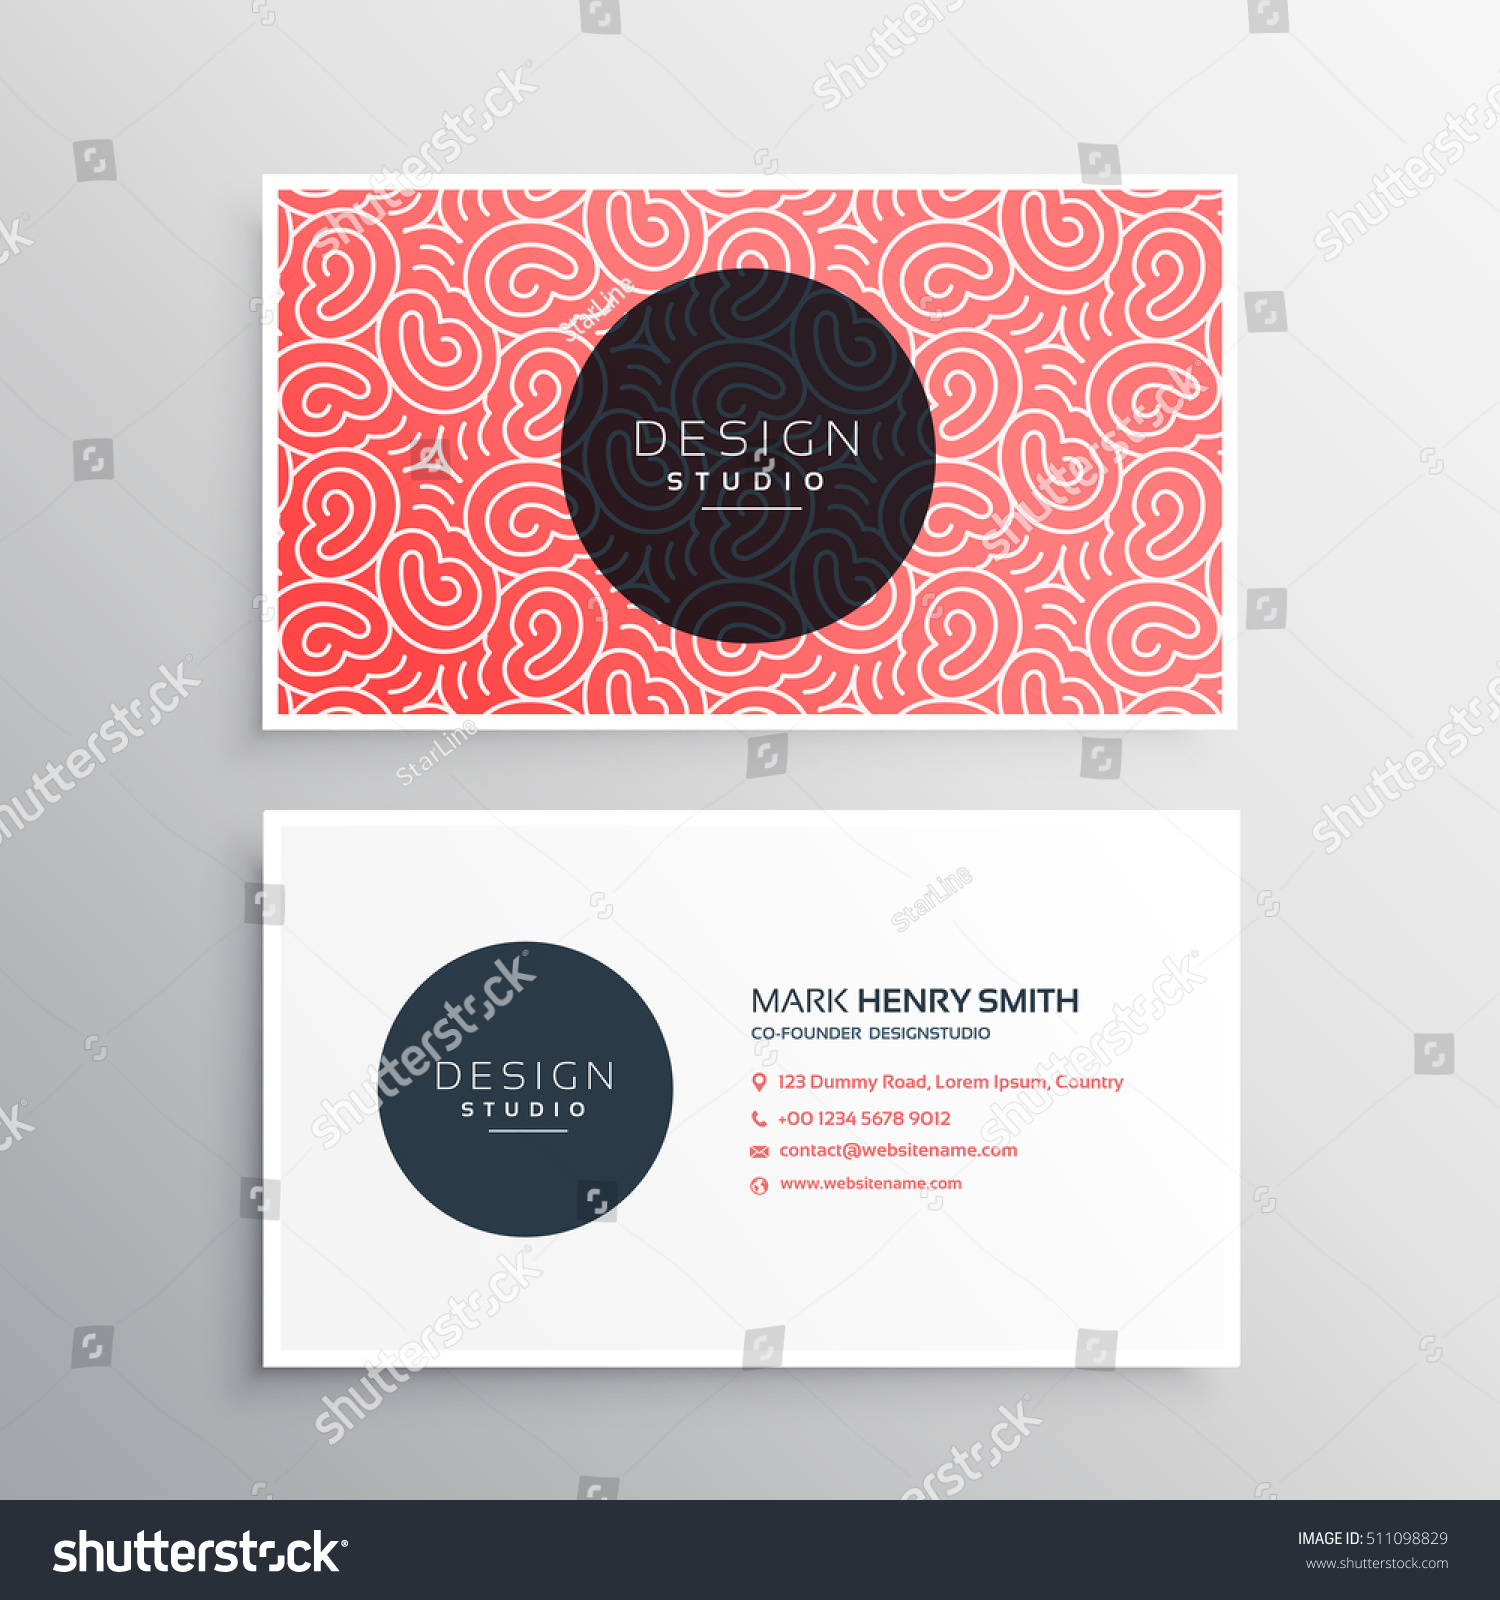 Abstract Minimal Business Card Template Organic Stock Vector ...